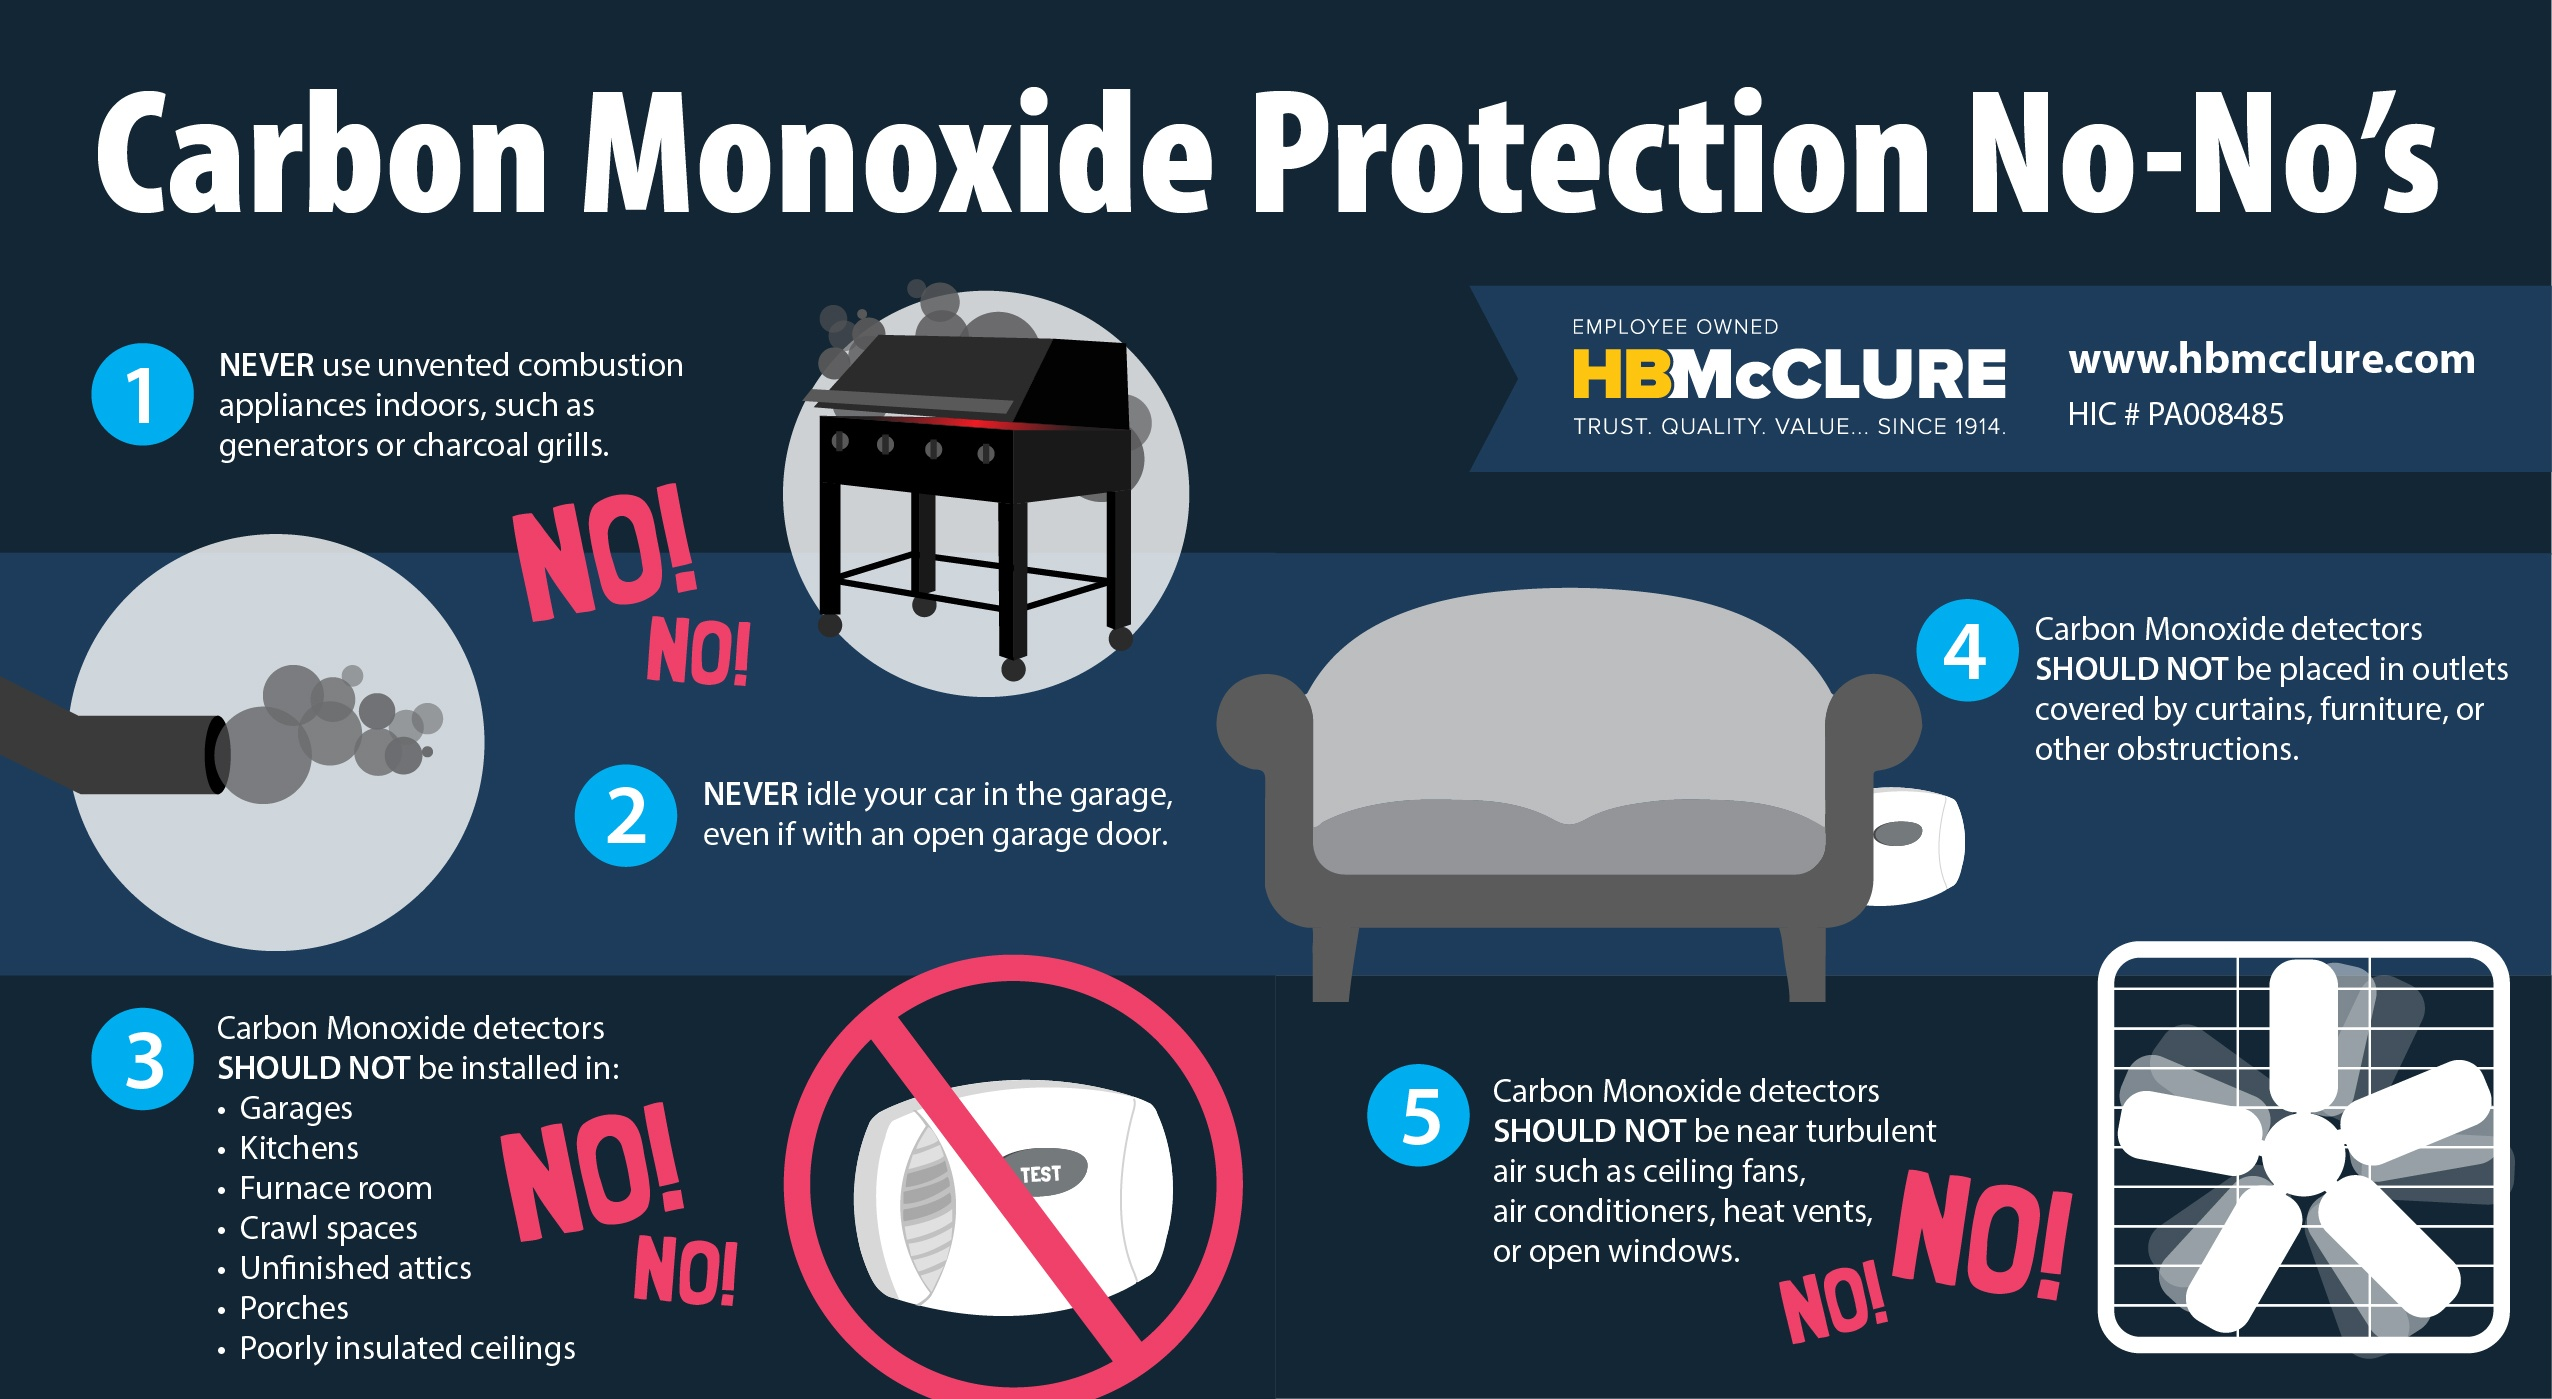 HBM07113 Carbon Monoxide Graphic NO NOs V2 02